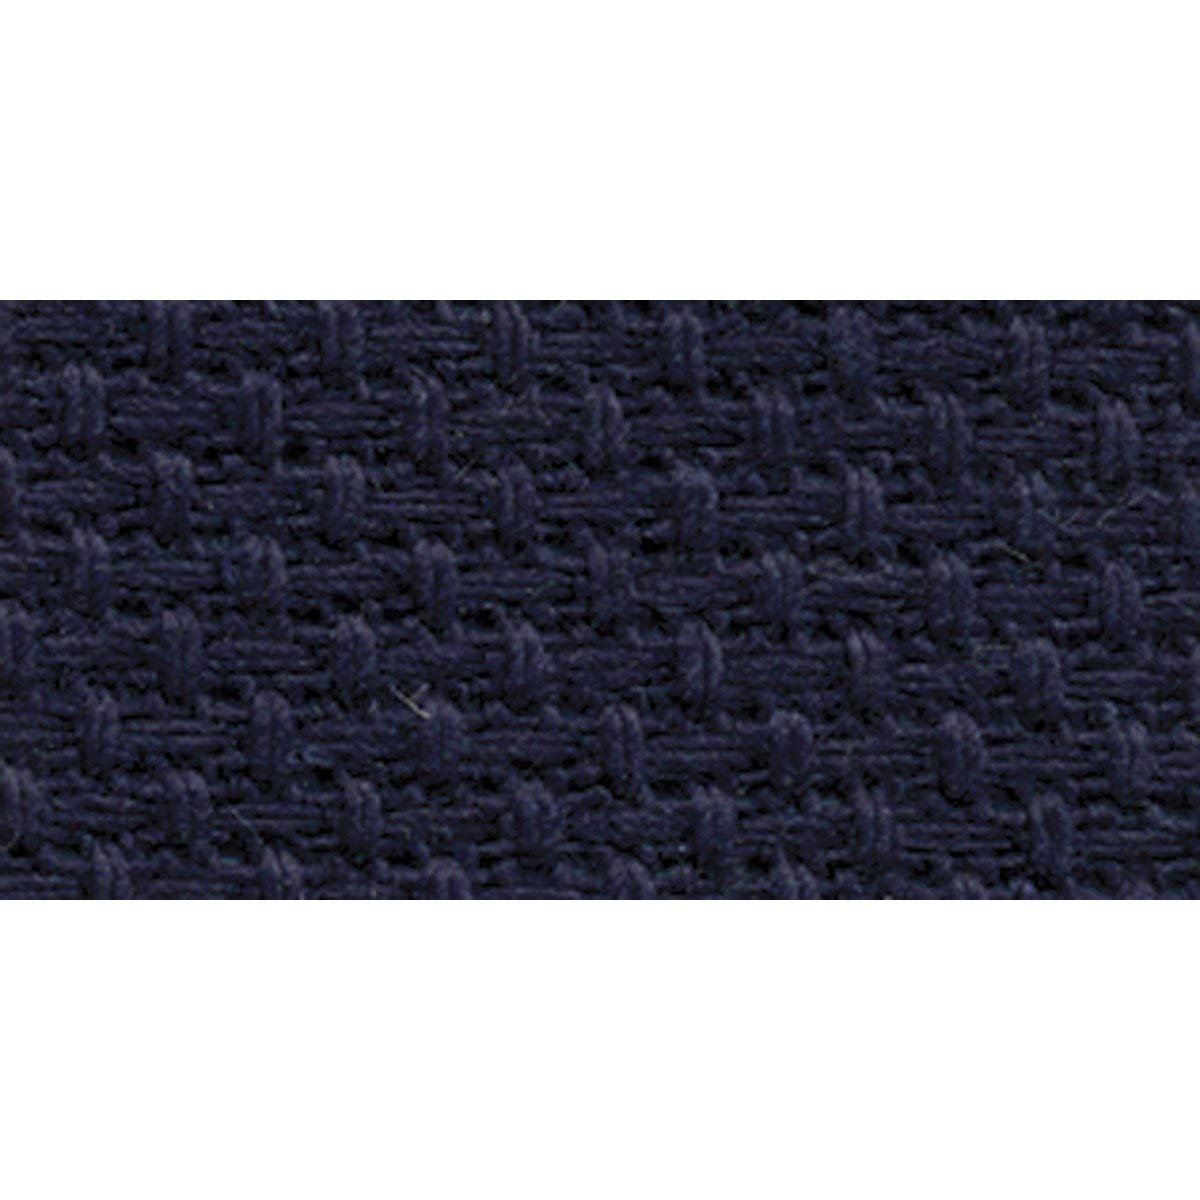 DMC GD1436-5225 Classic Reserve Gold Label Aida Fabric Box, Navy, 14 Count